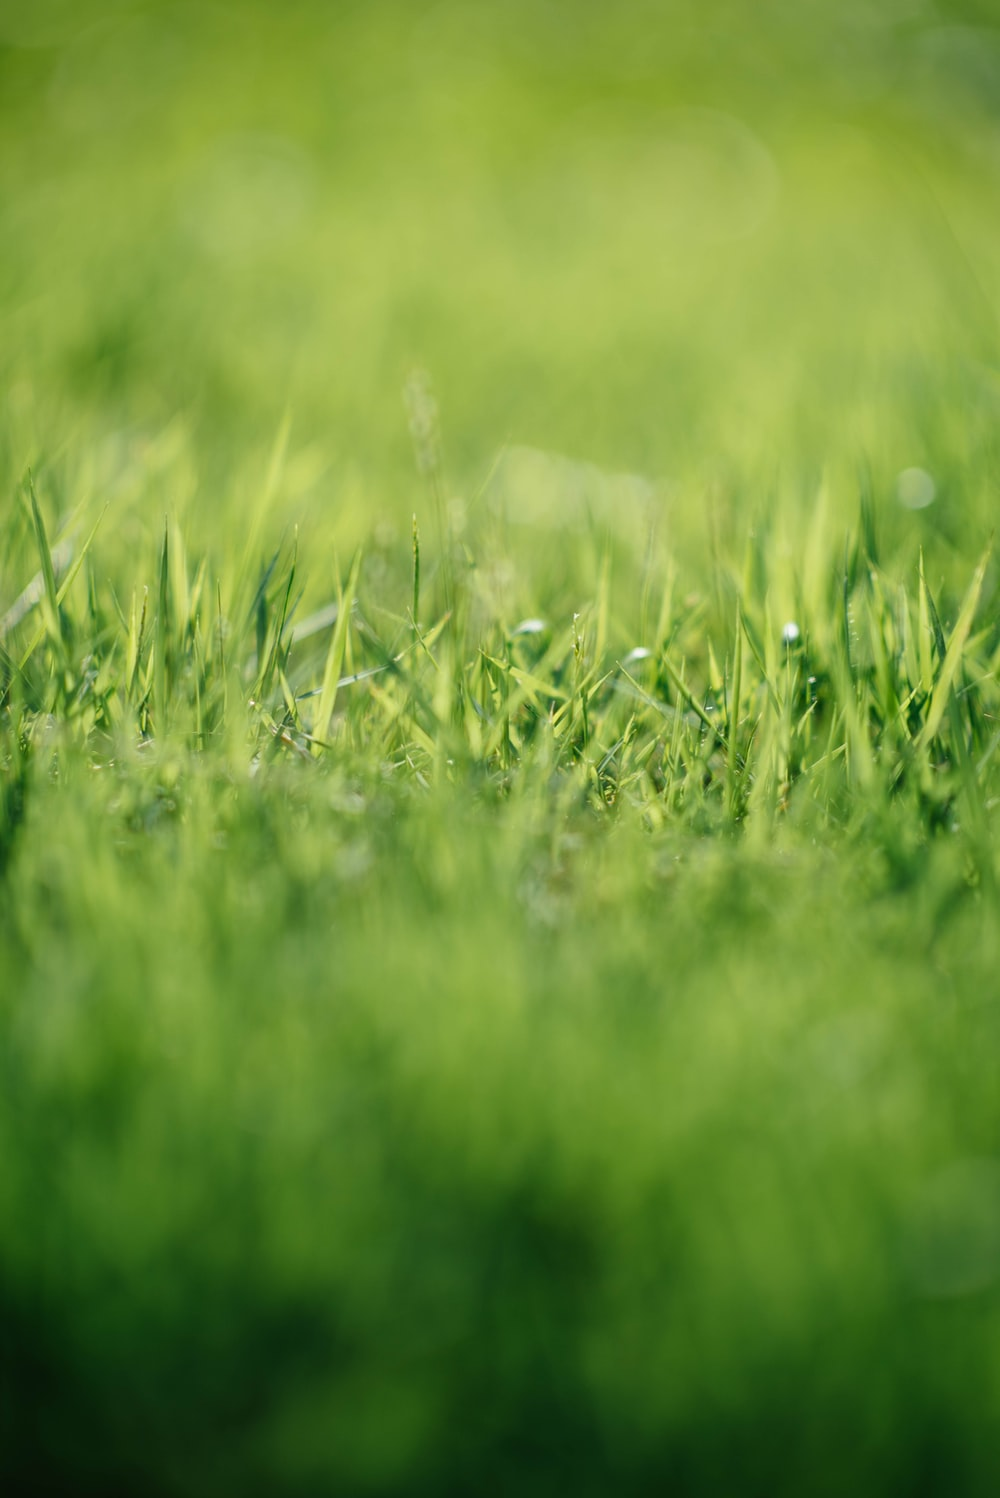 Best 500 Grass Pictures Download Free Images On Unsplash